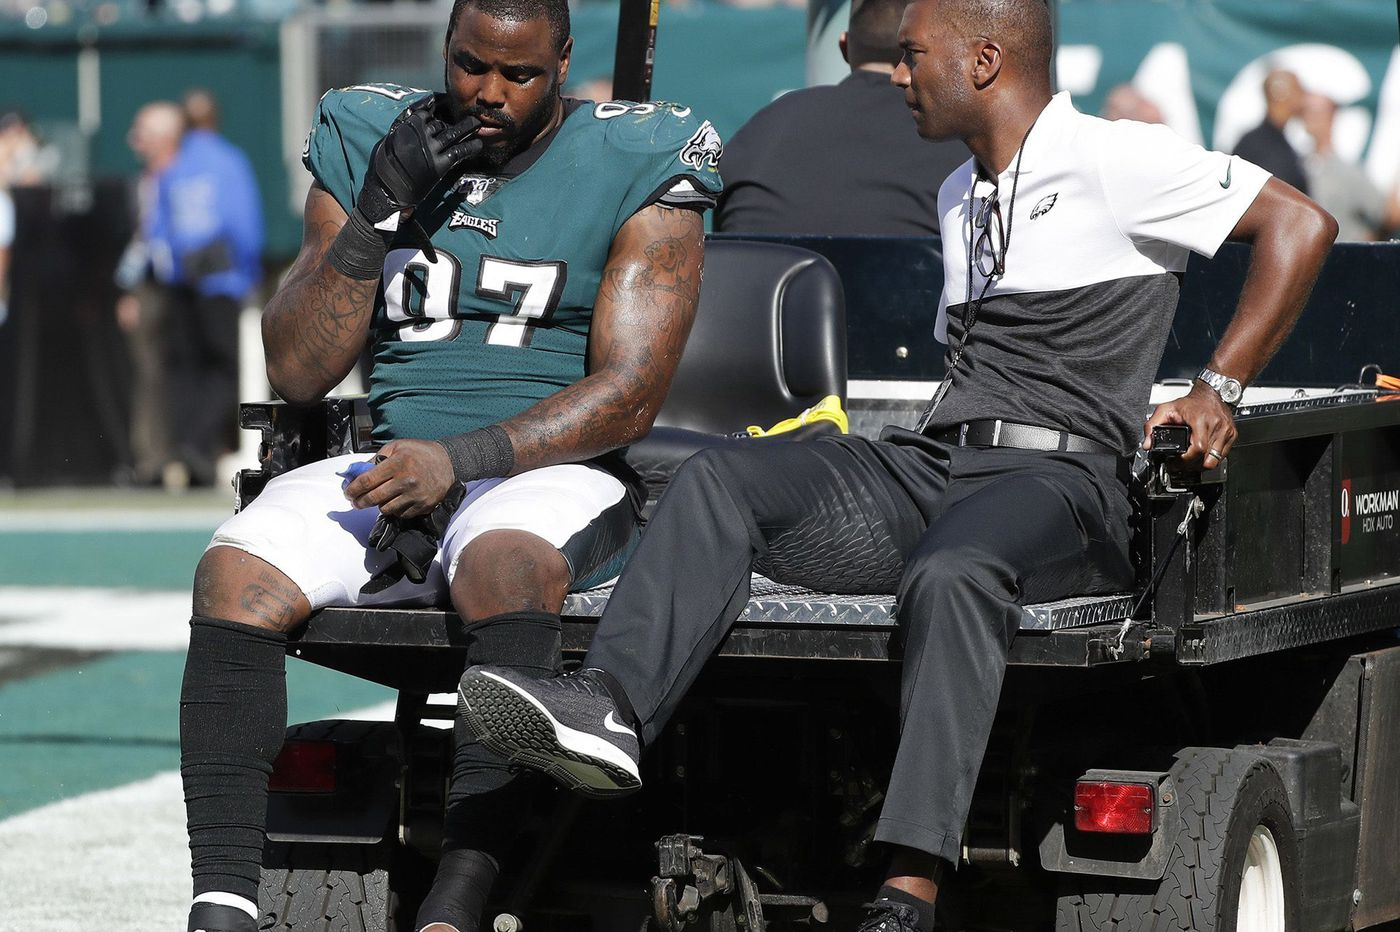 Malik, the other Jackson whose early injury affected the Eagles, and Fletcher Cox will regroup in 2020